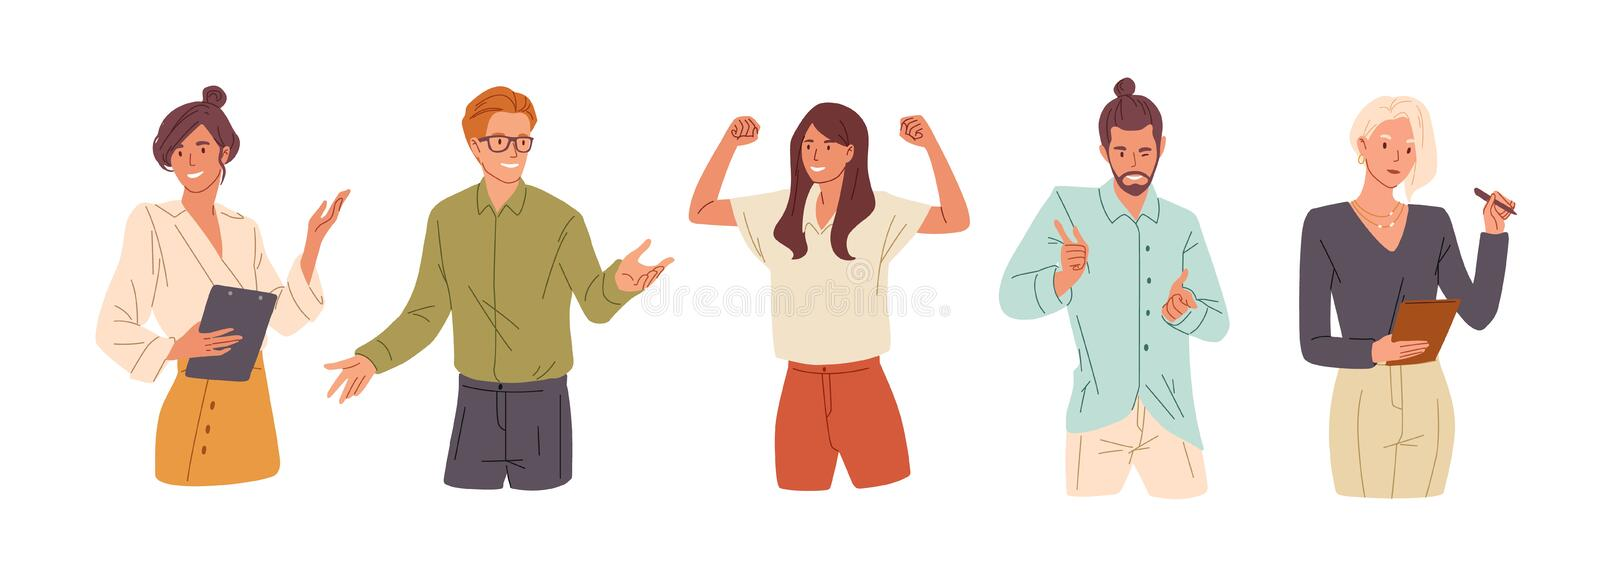 Confident people flat vector illustrations set. Presentation woman, college student and successful businesswoman. Girl royalty free illustration